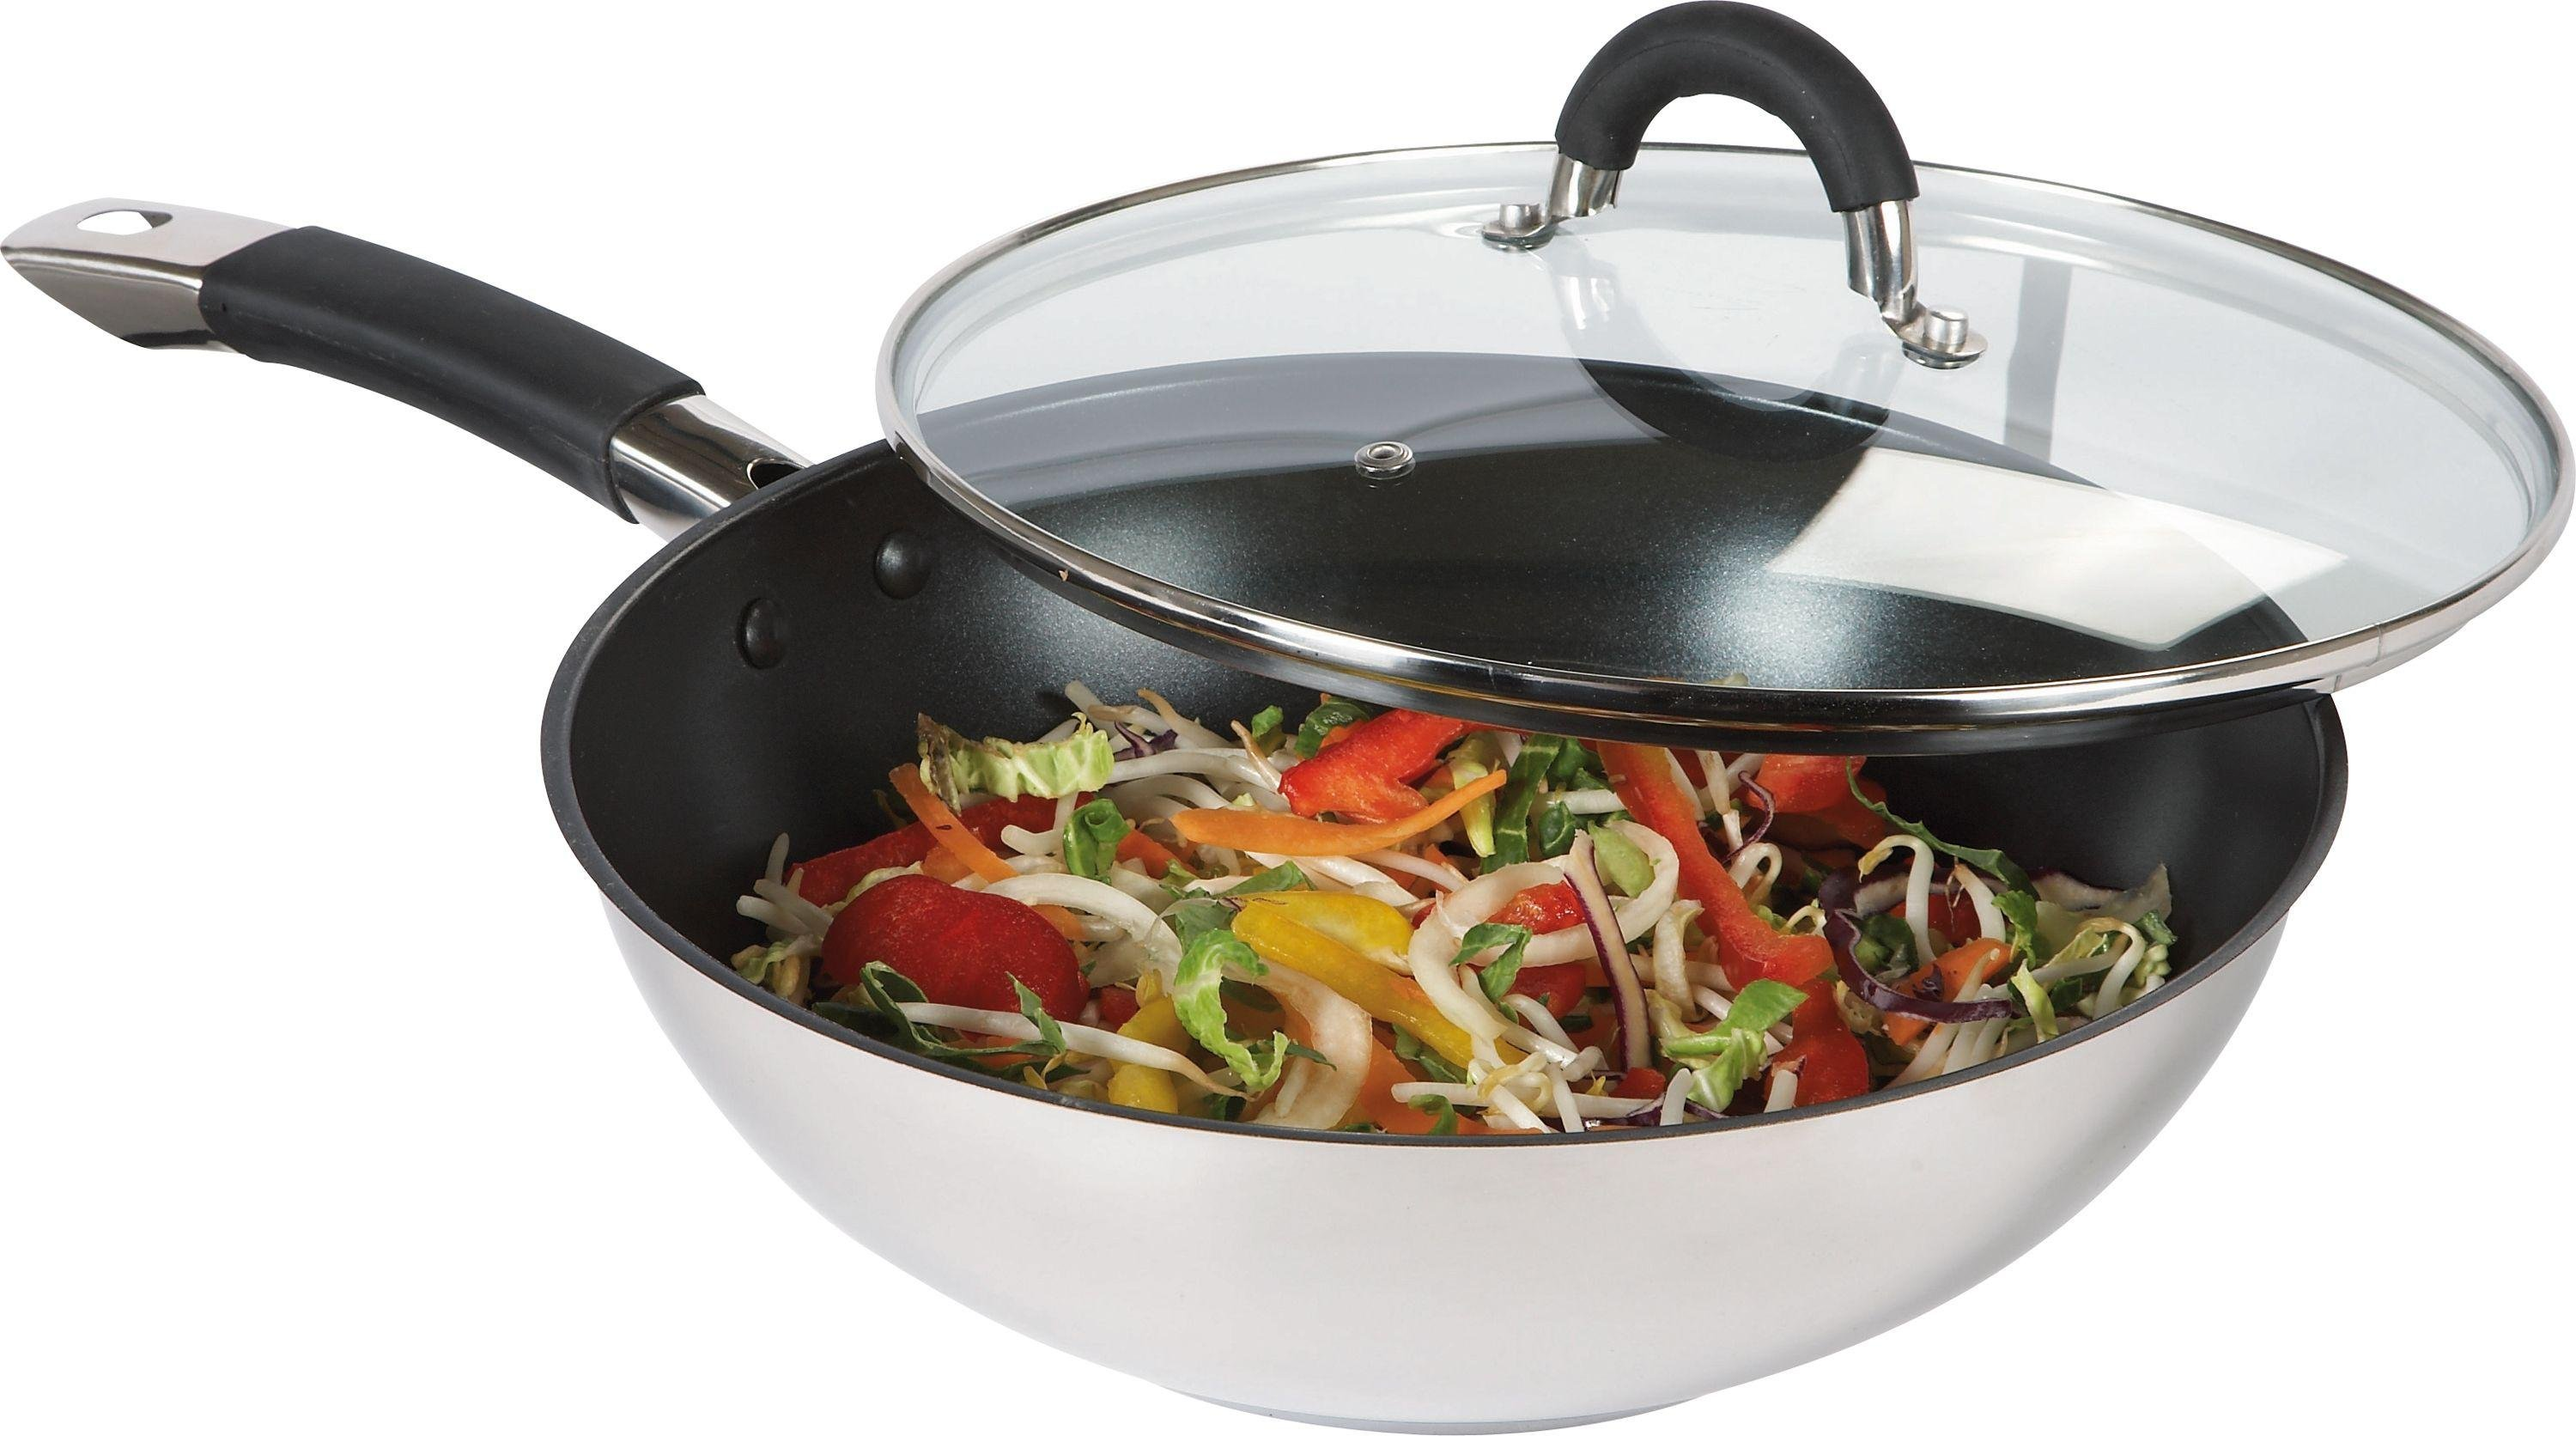 ready steady cook 28cm nonstick stirfry pan with lid - Stir Fry Pan